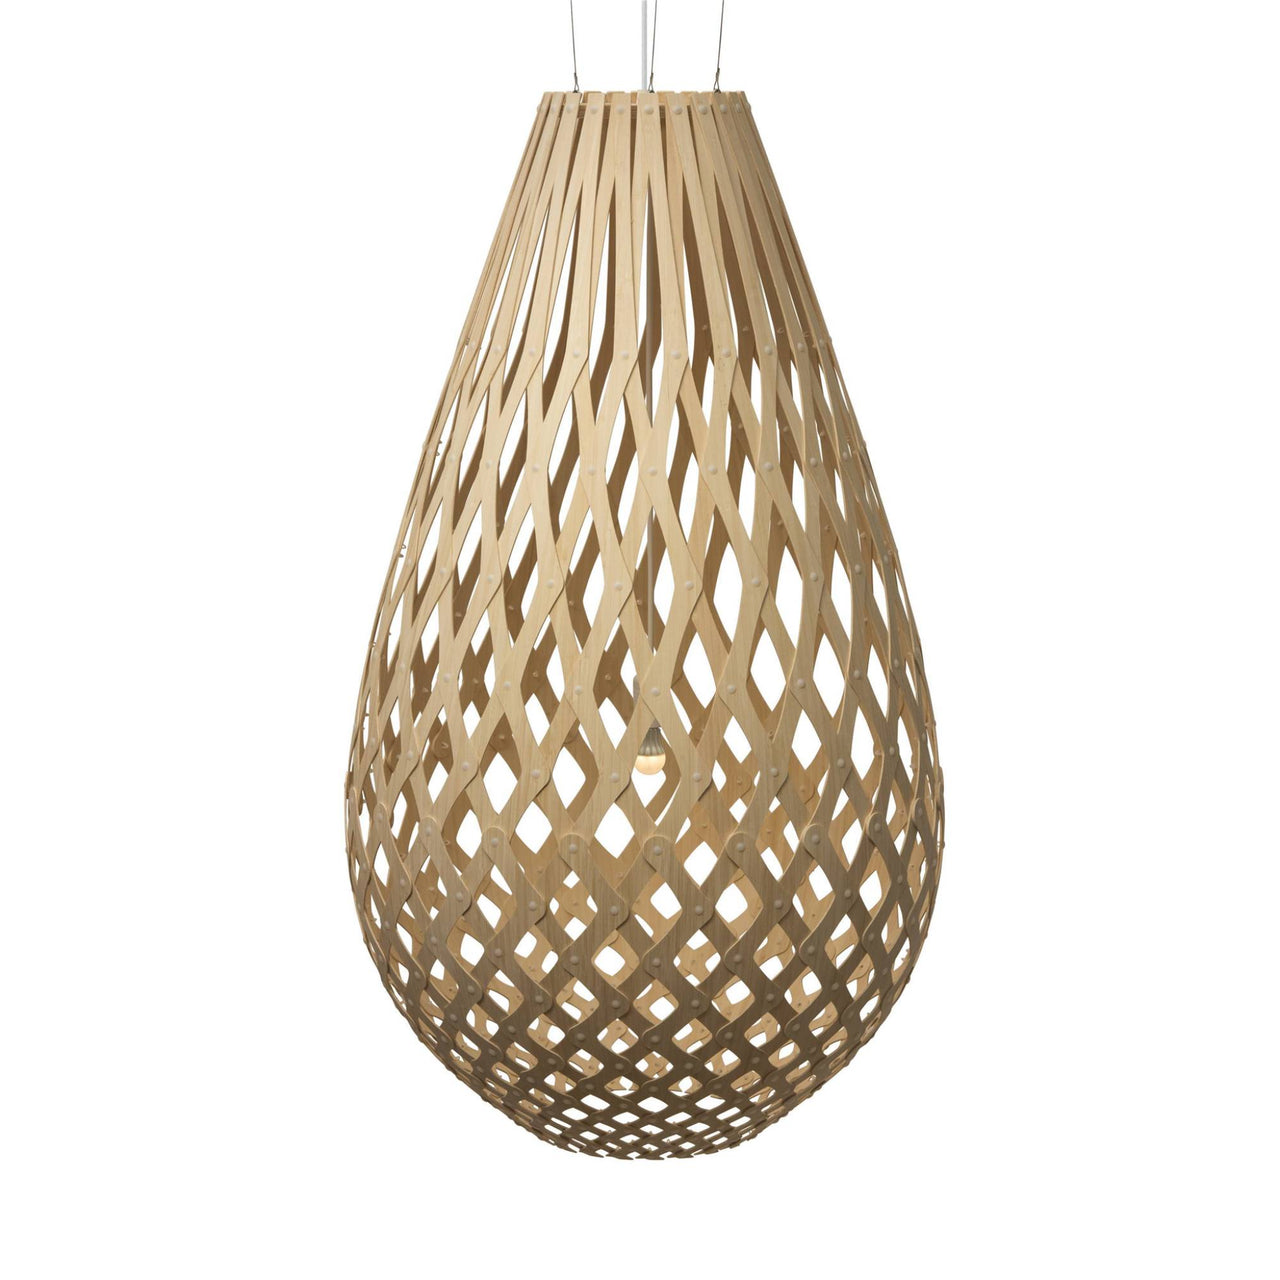 Koura Pendant Light: 1600 + Natural